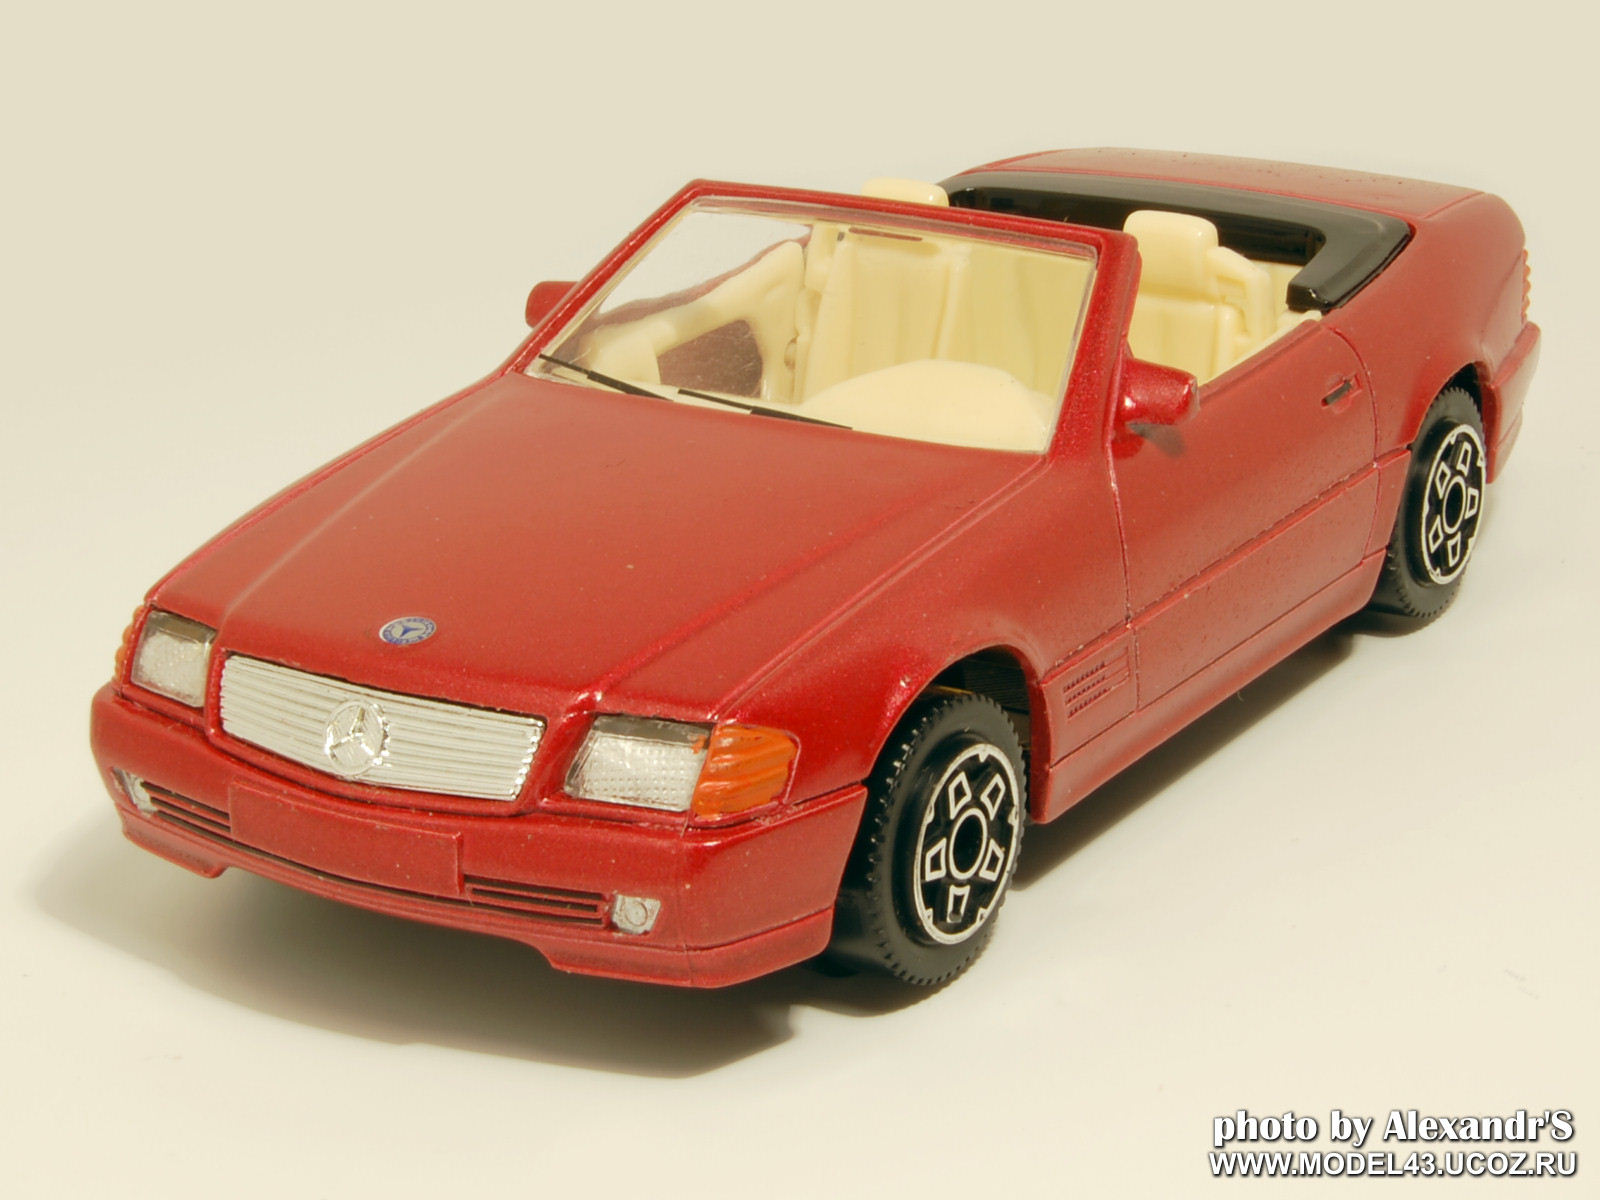 Bburago: 1989 Mercedes-Benz 300 SL (R129) - Red Metallic (cod.4181) in 1:43 scale